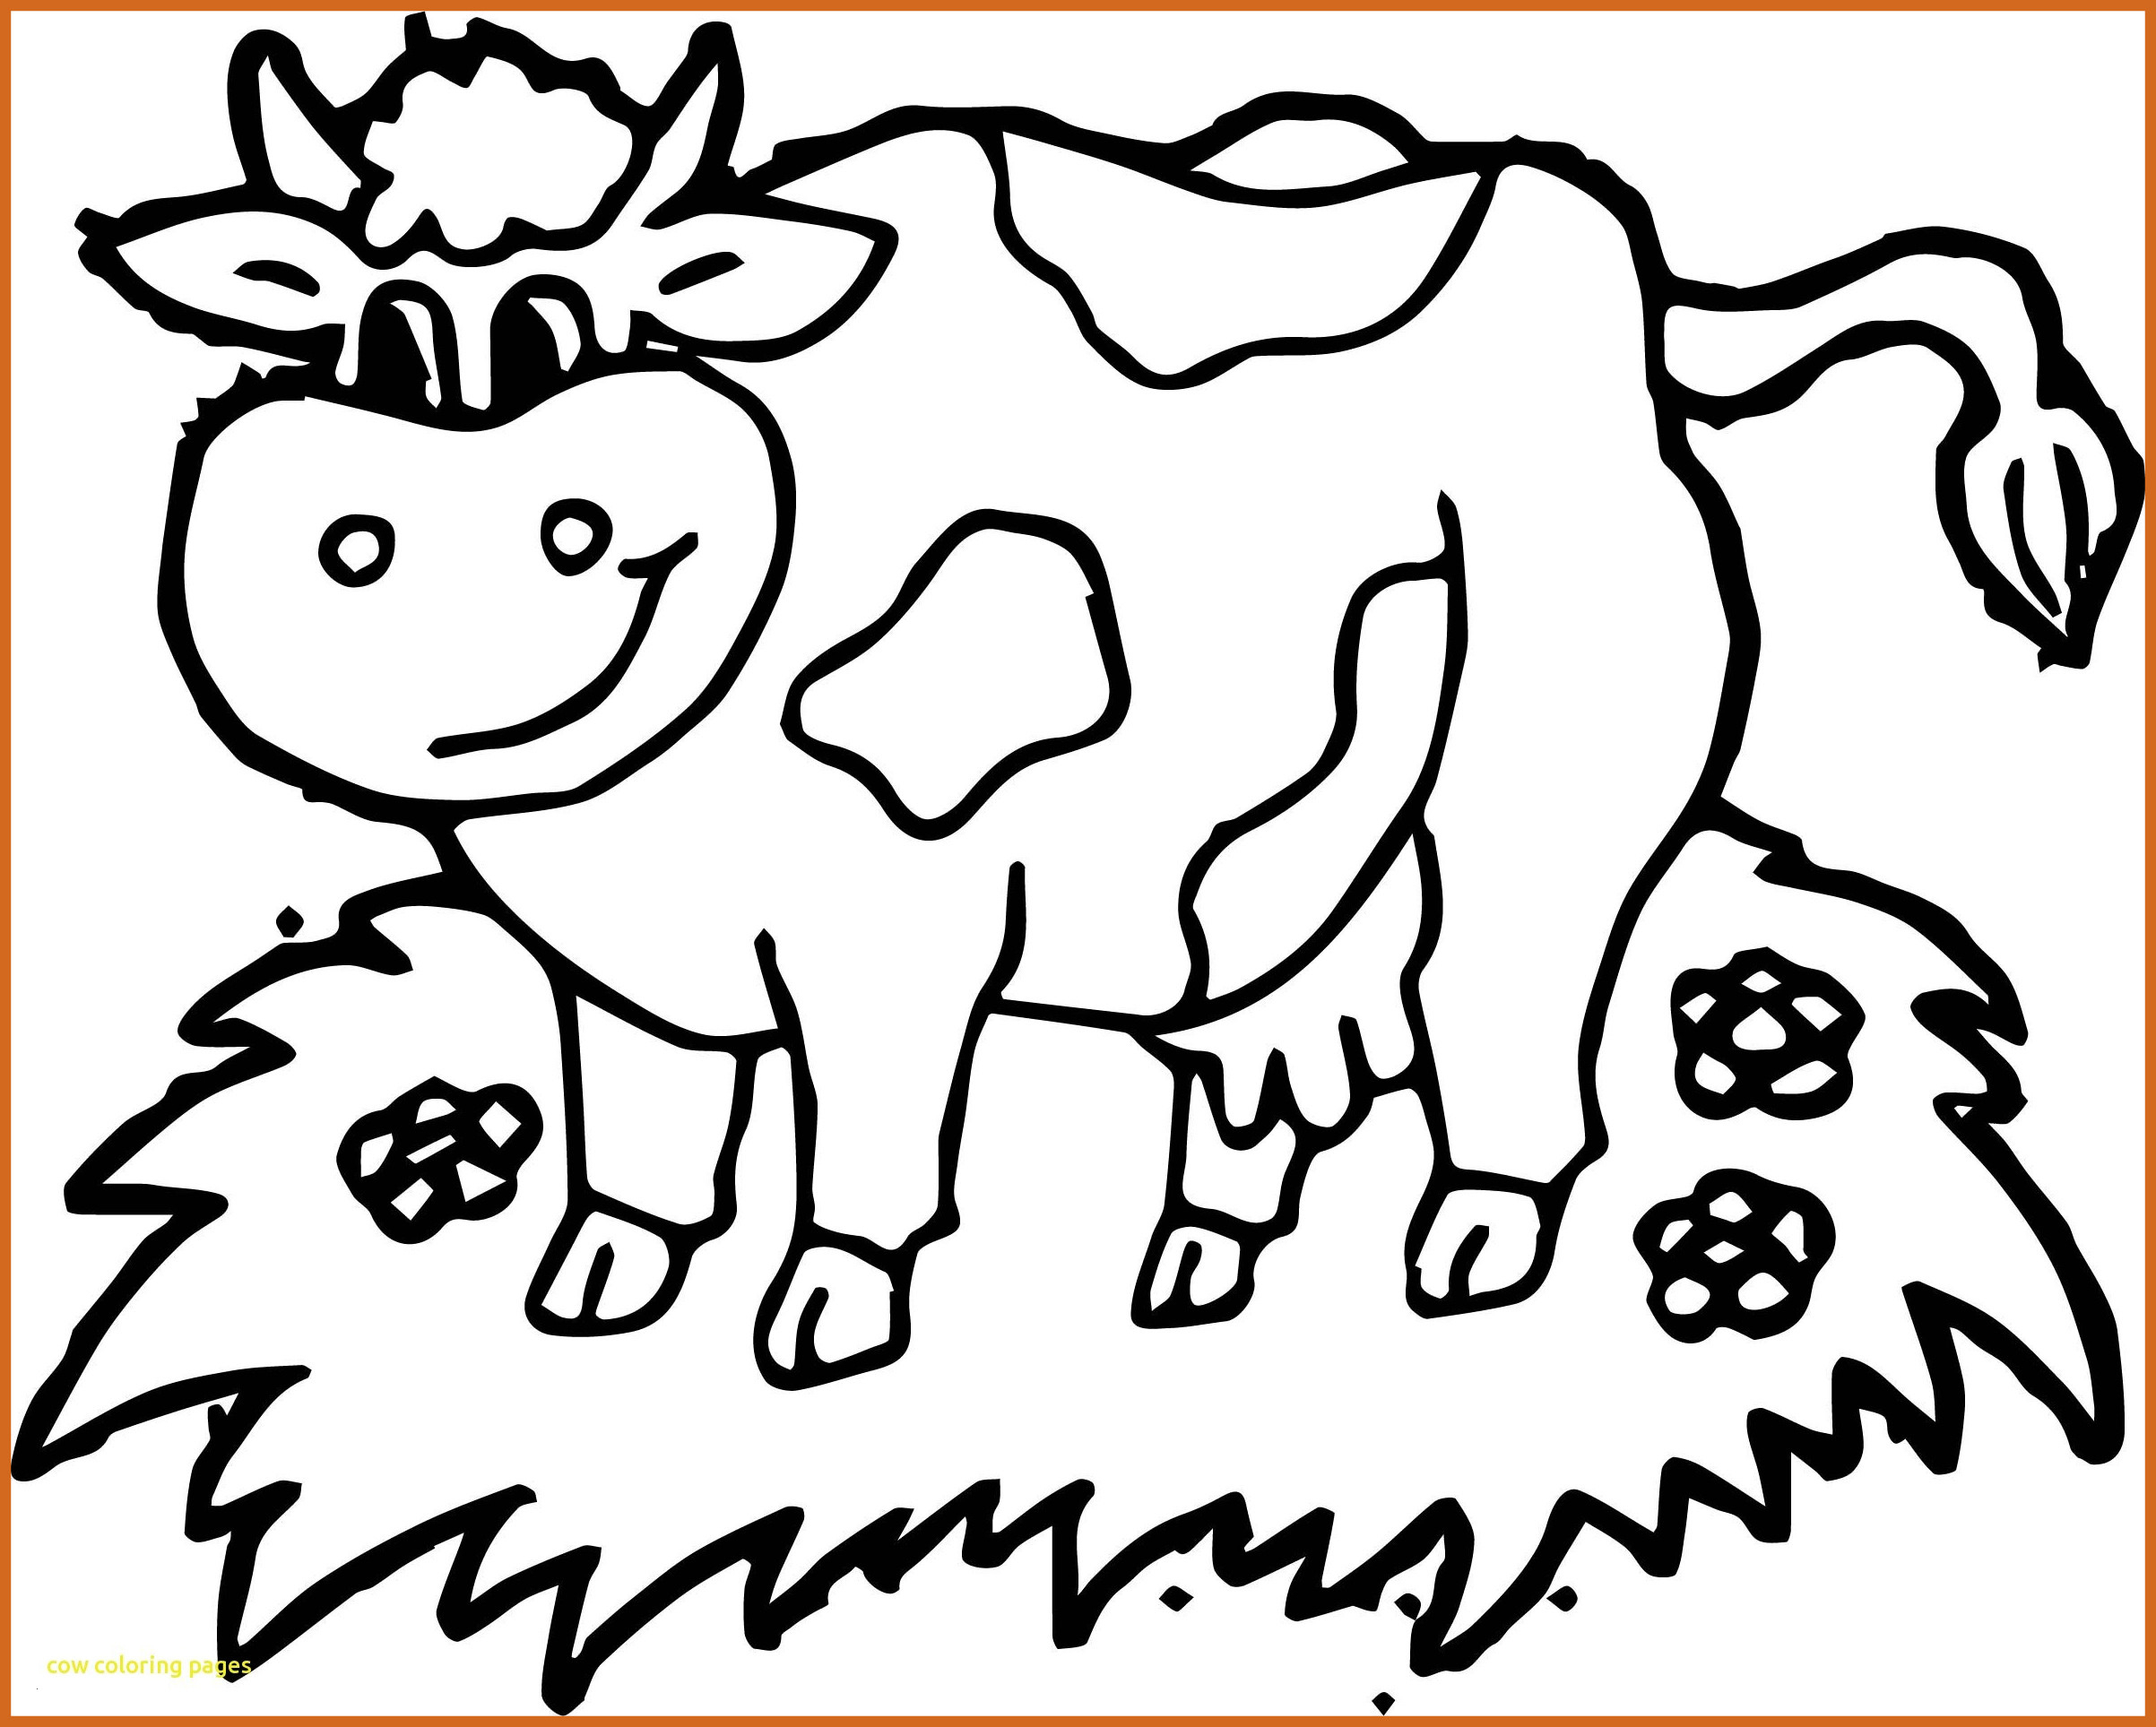 Cow Coloring Pages  to Print 10i - Free For kids